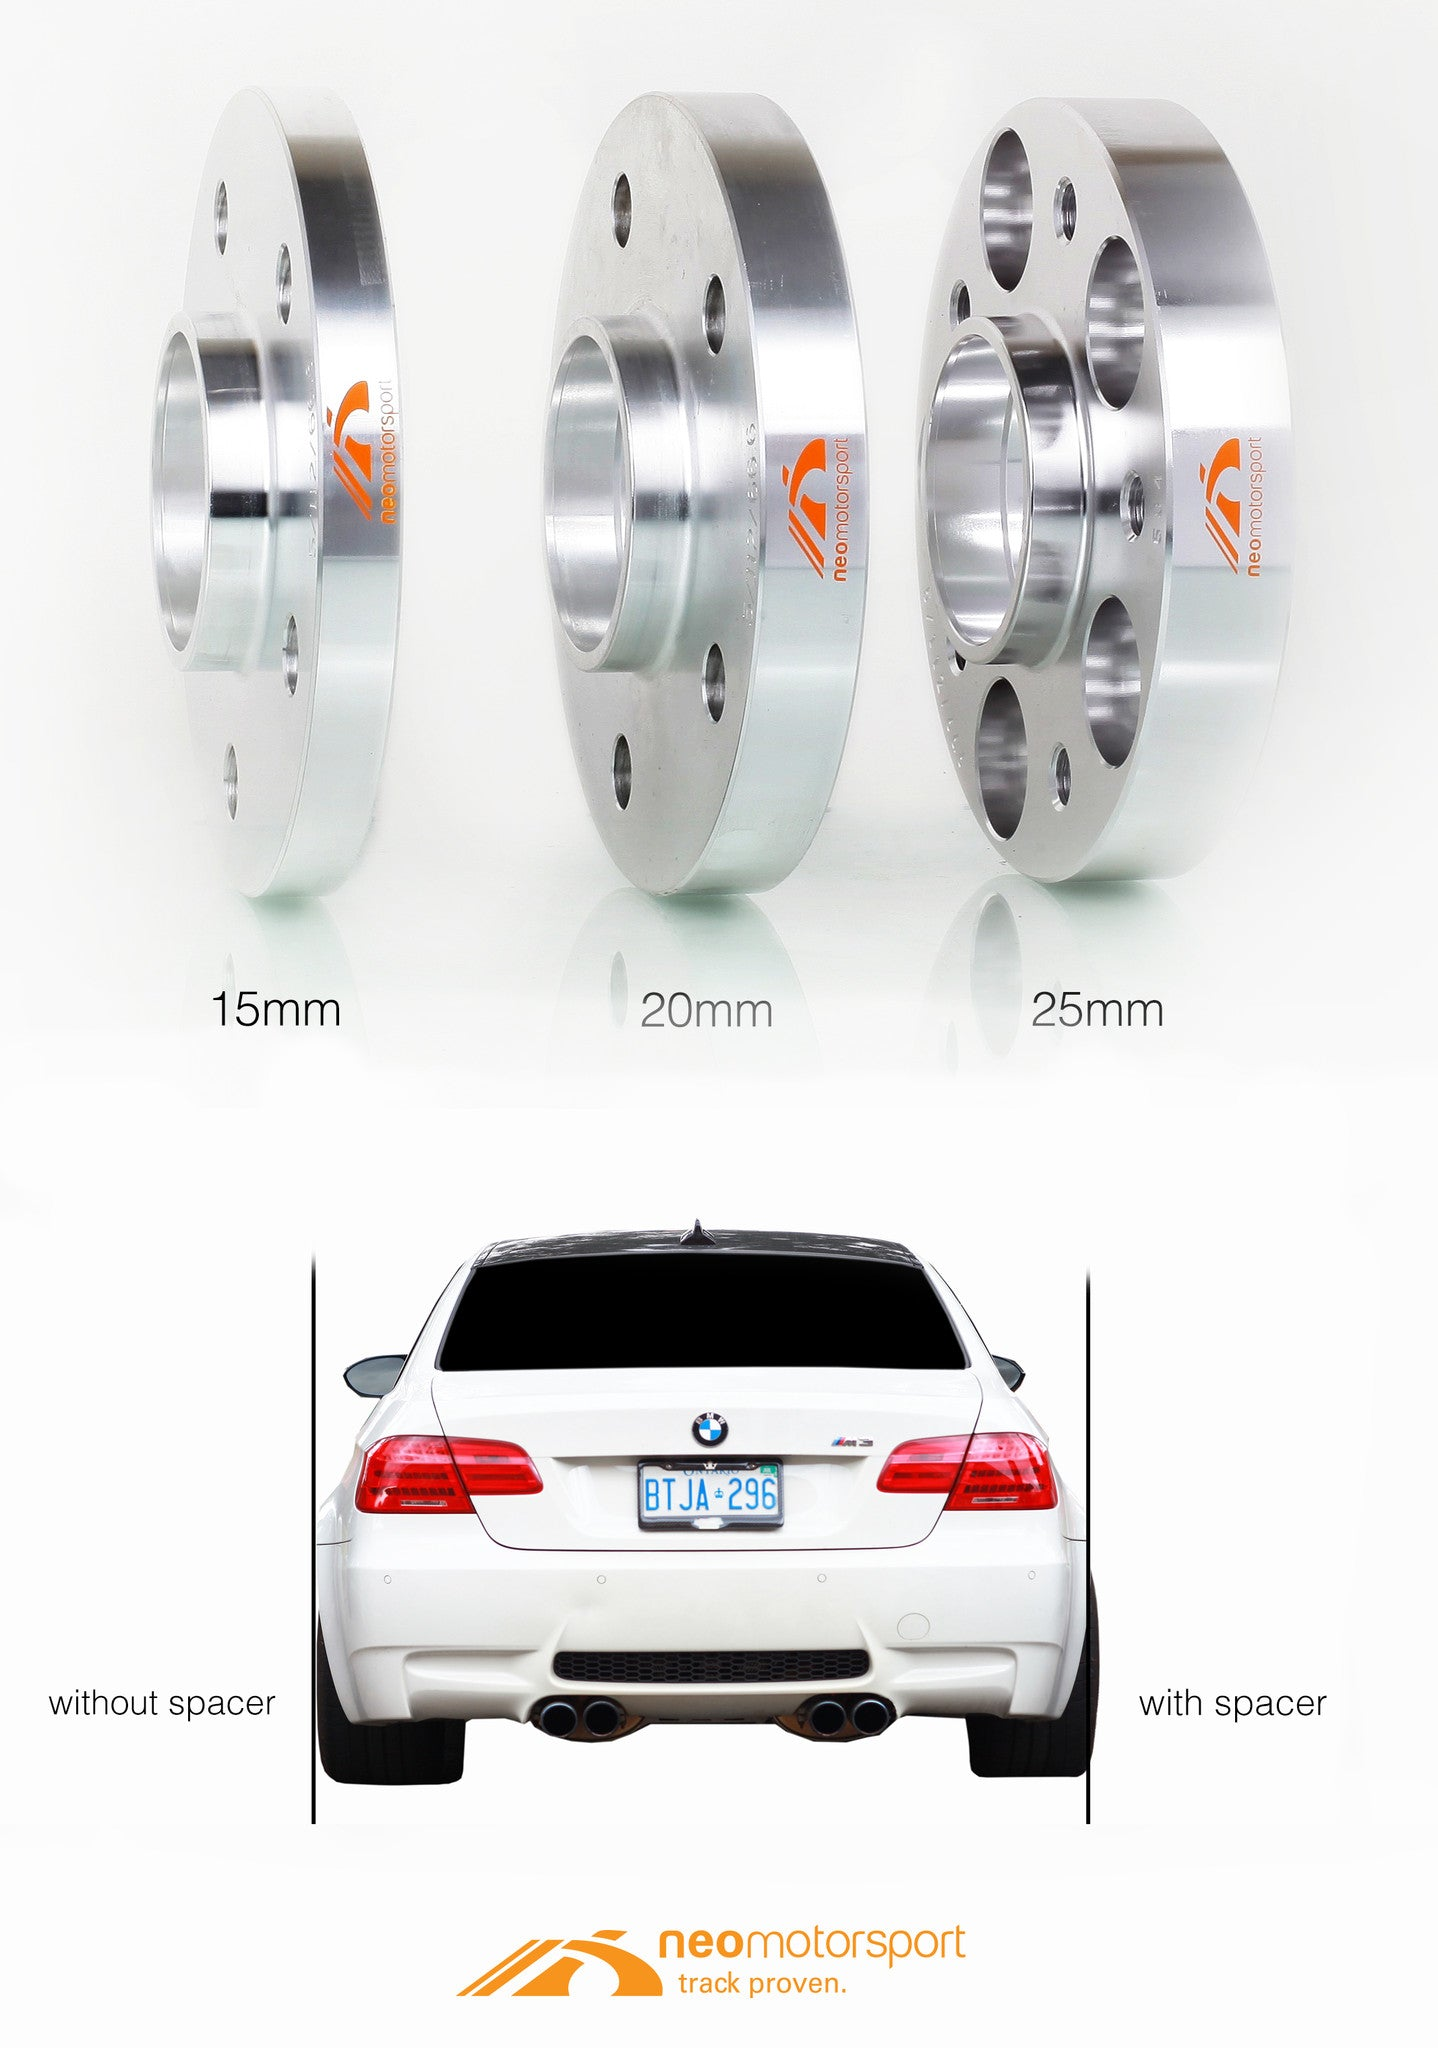 High Quality True Forged Wheel Spacers For Bmw E39 5 Series 528i 530i 540i M5 Neo Motorsport